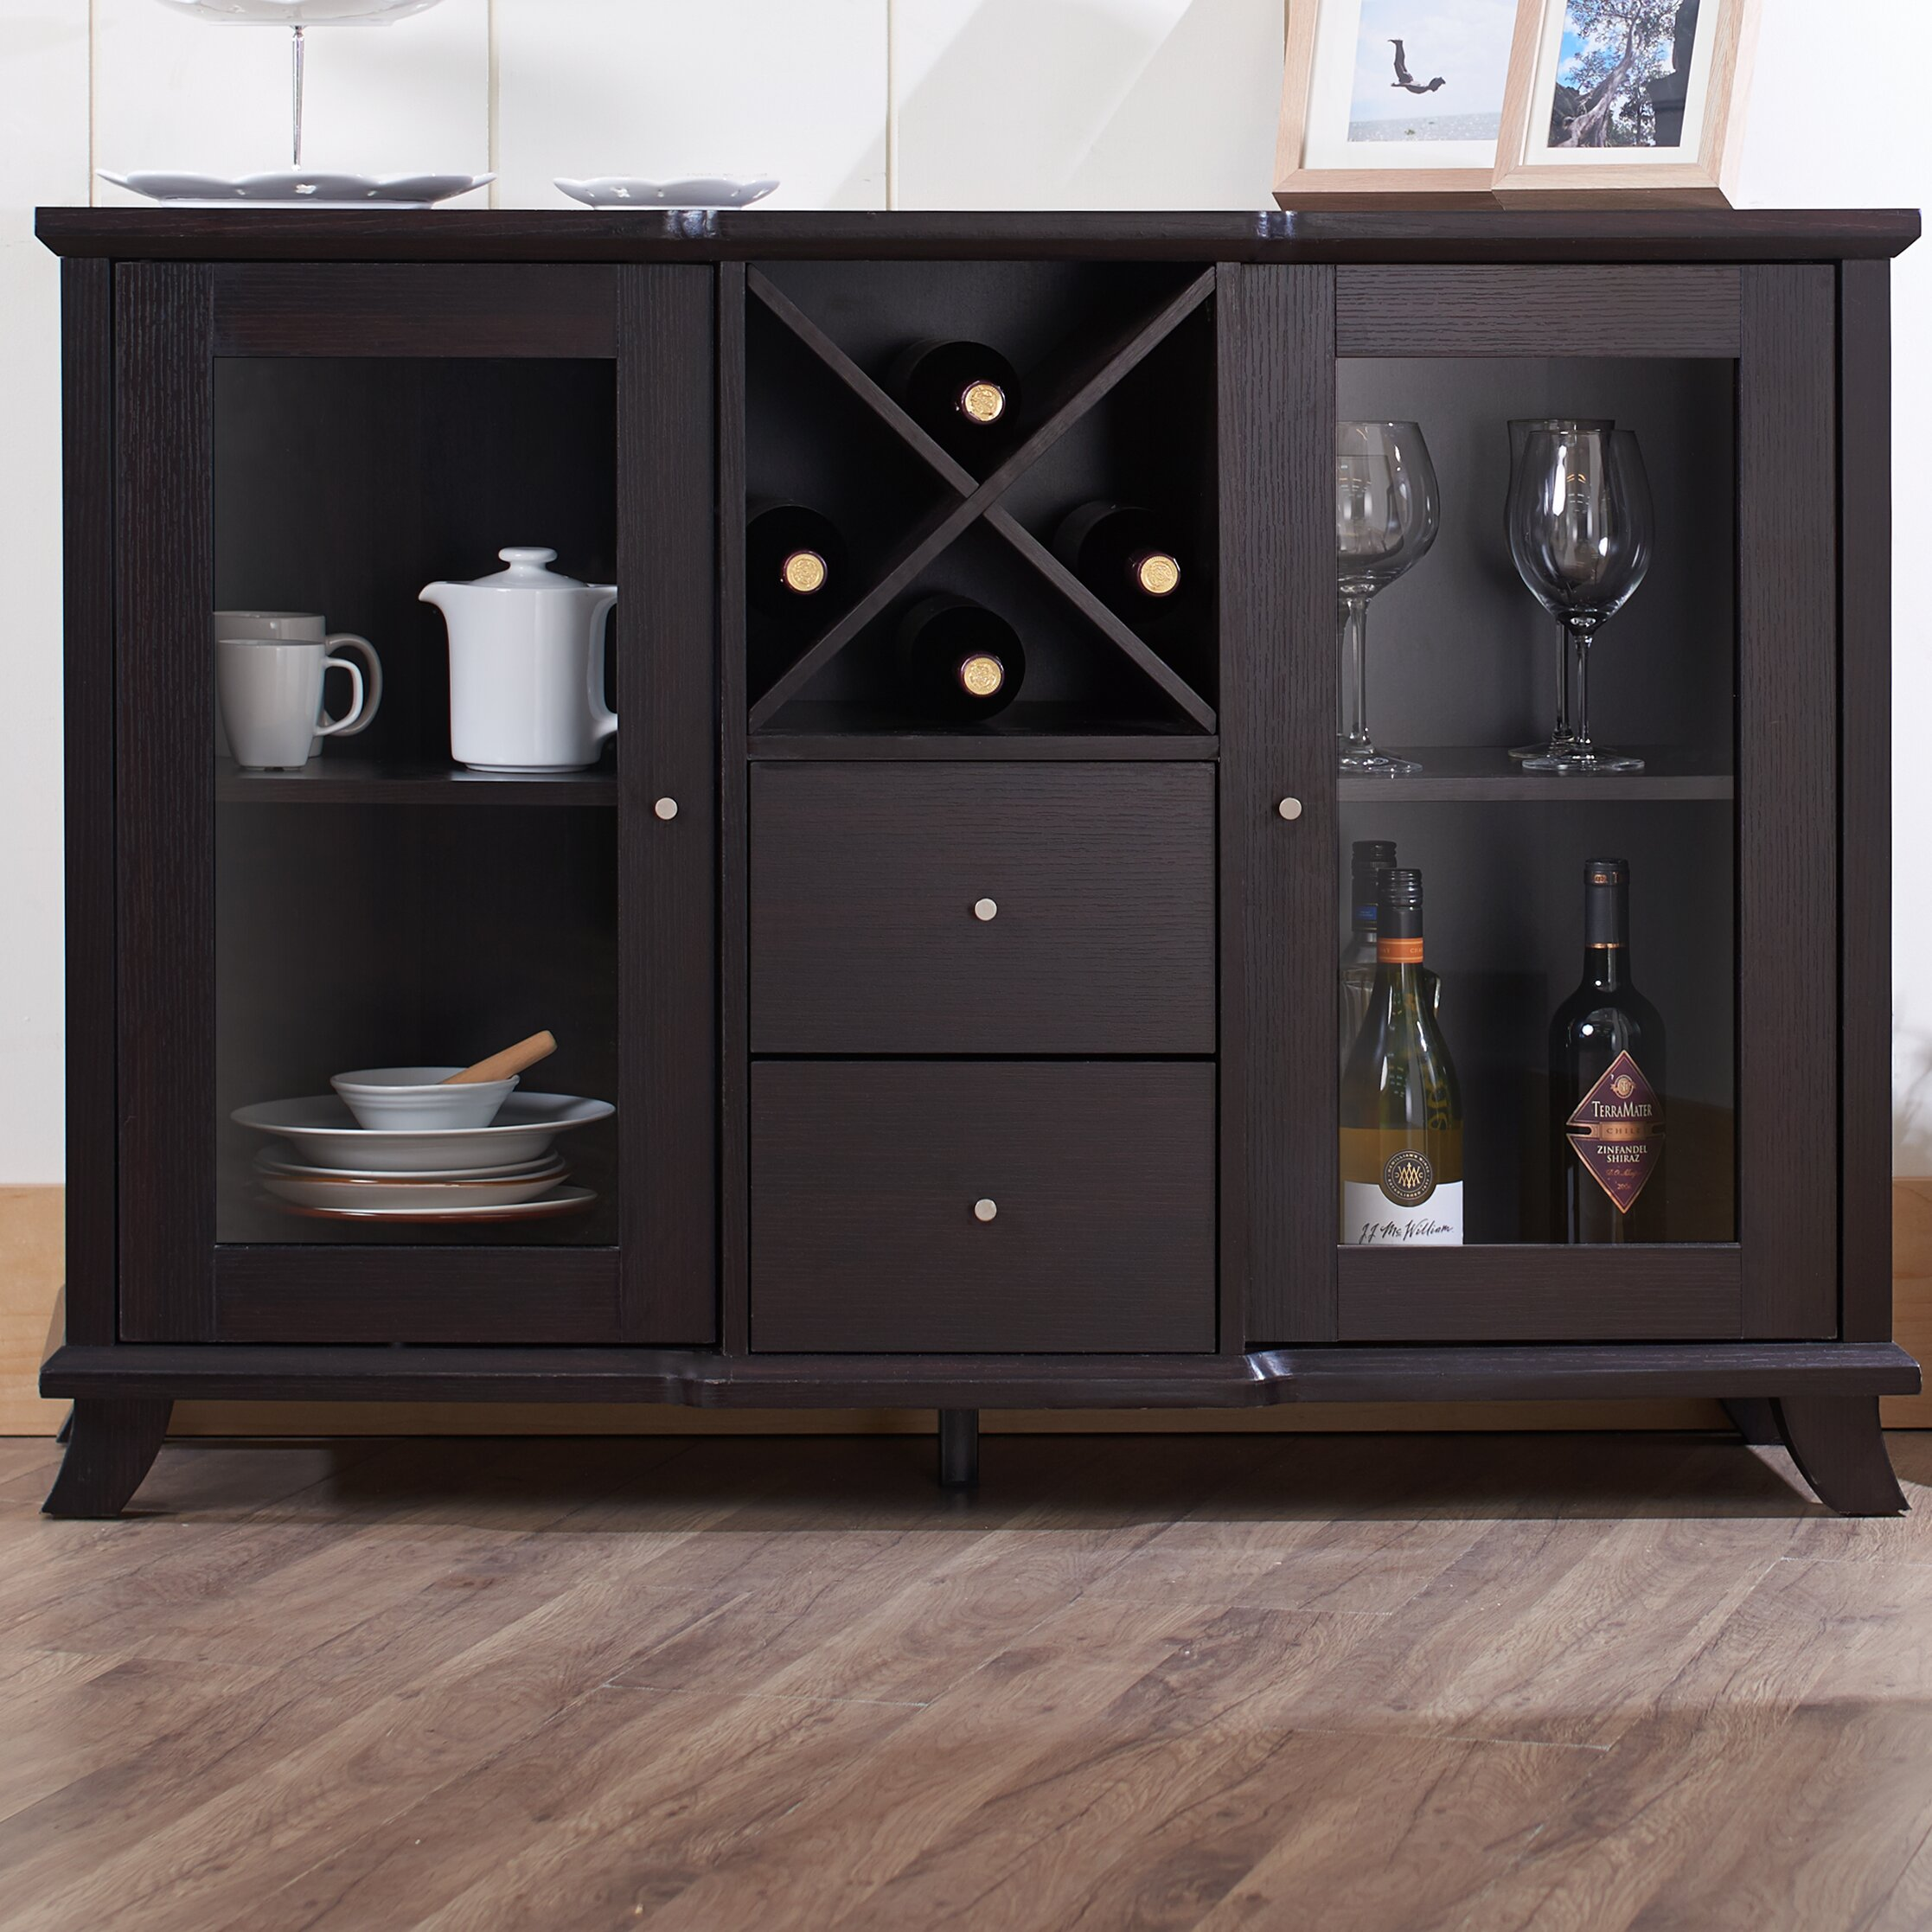 Hokku Designs Venetta Dining Buffet Cabinet & Reviews